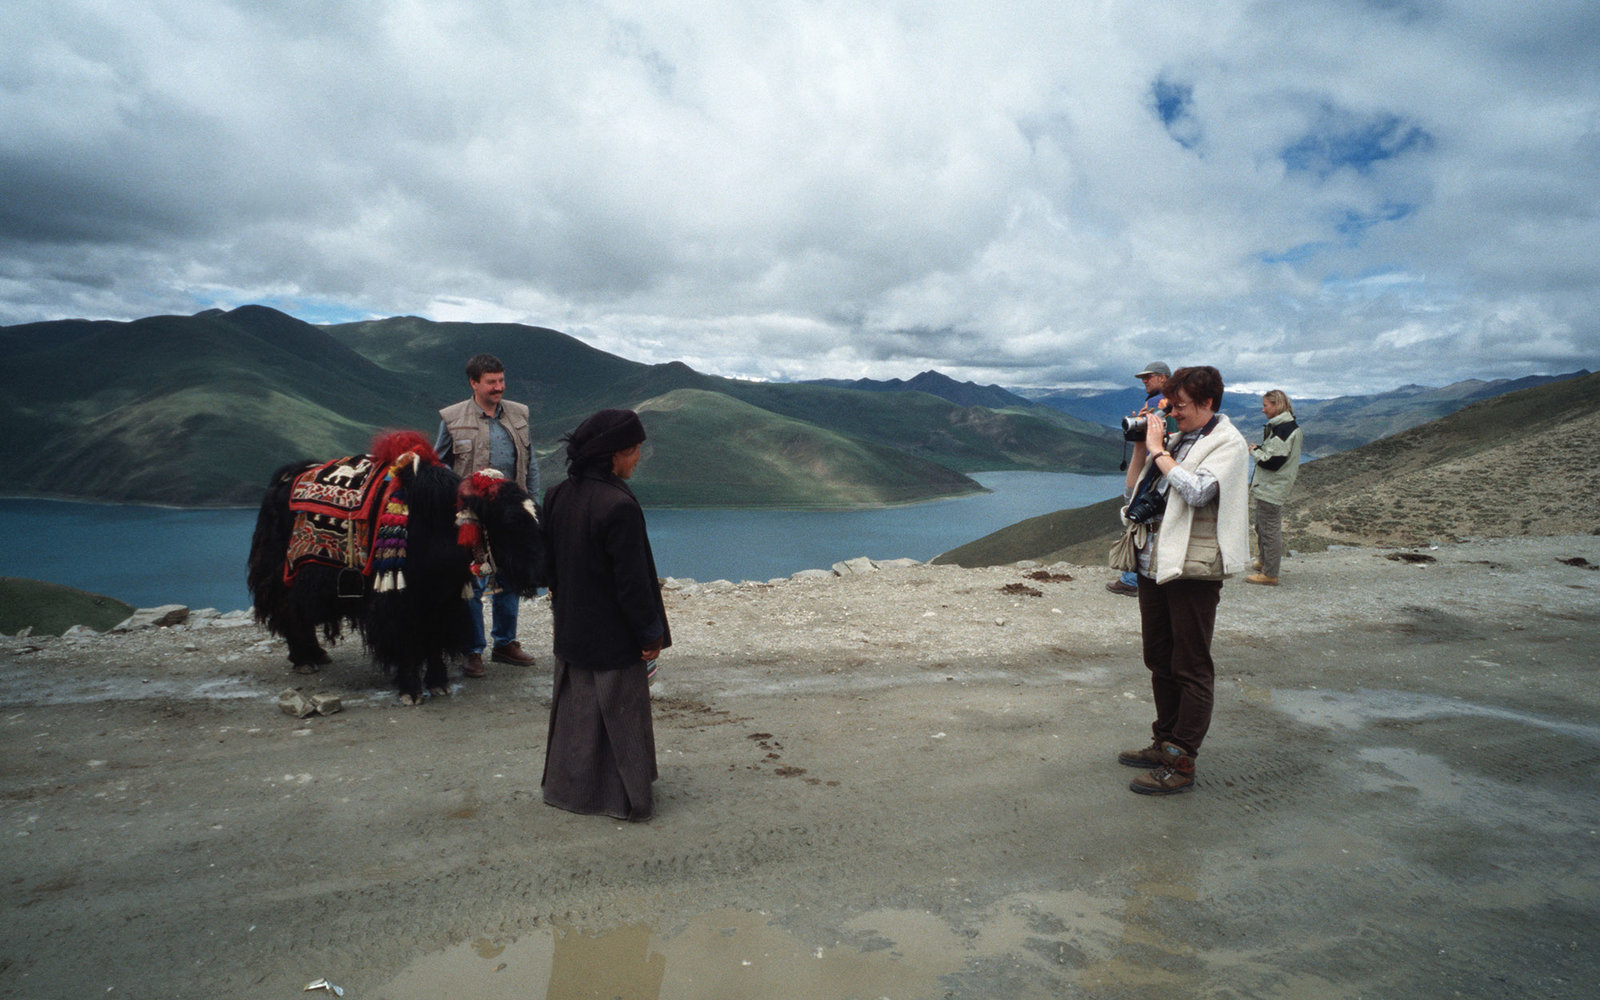 TIBET, CHINA - 2000/08/01: A Tibetan nomad poses for a photo as a group of tourists takes a break on the road from Lhasa to Kathmandu.. (Photo by Yvan Cohen/LightRocket via Getty Images)